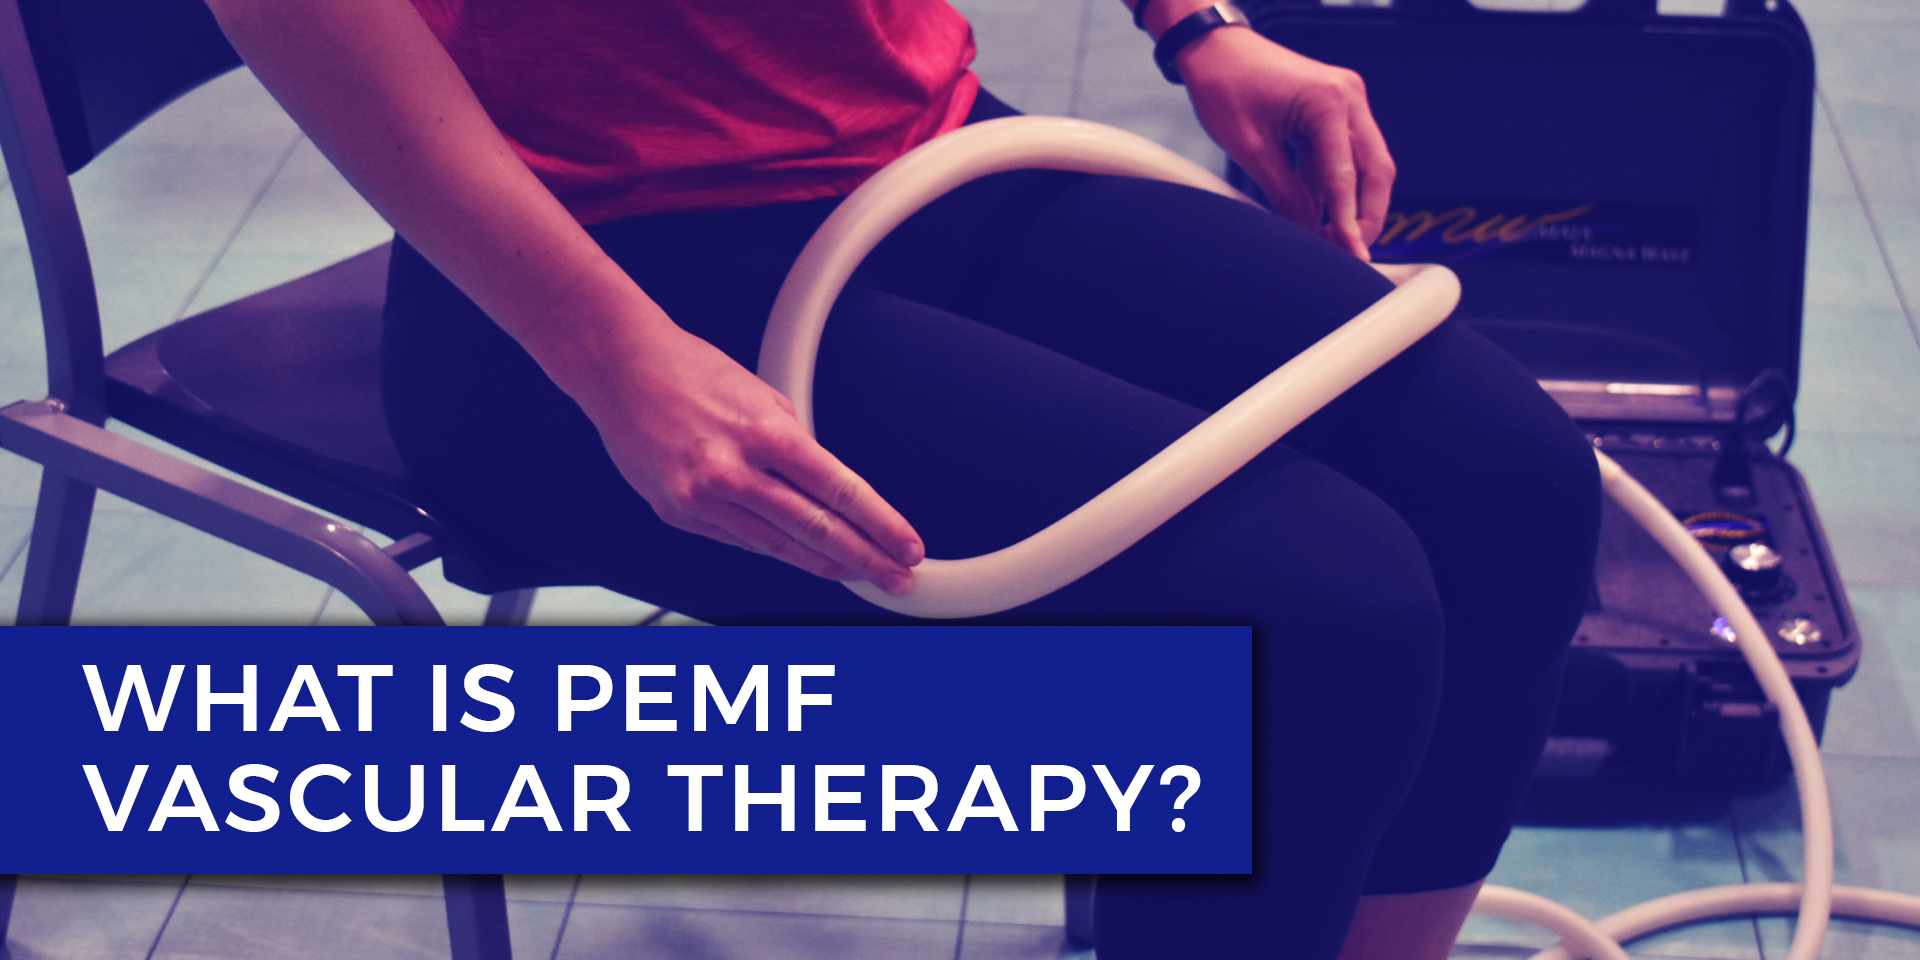 What is PEMF Vascular Therapy?